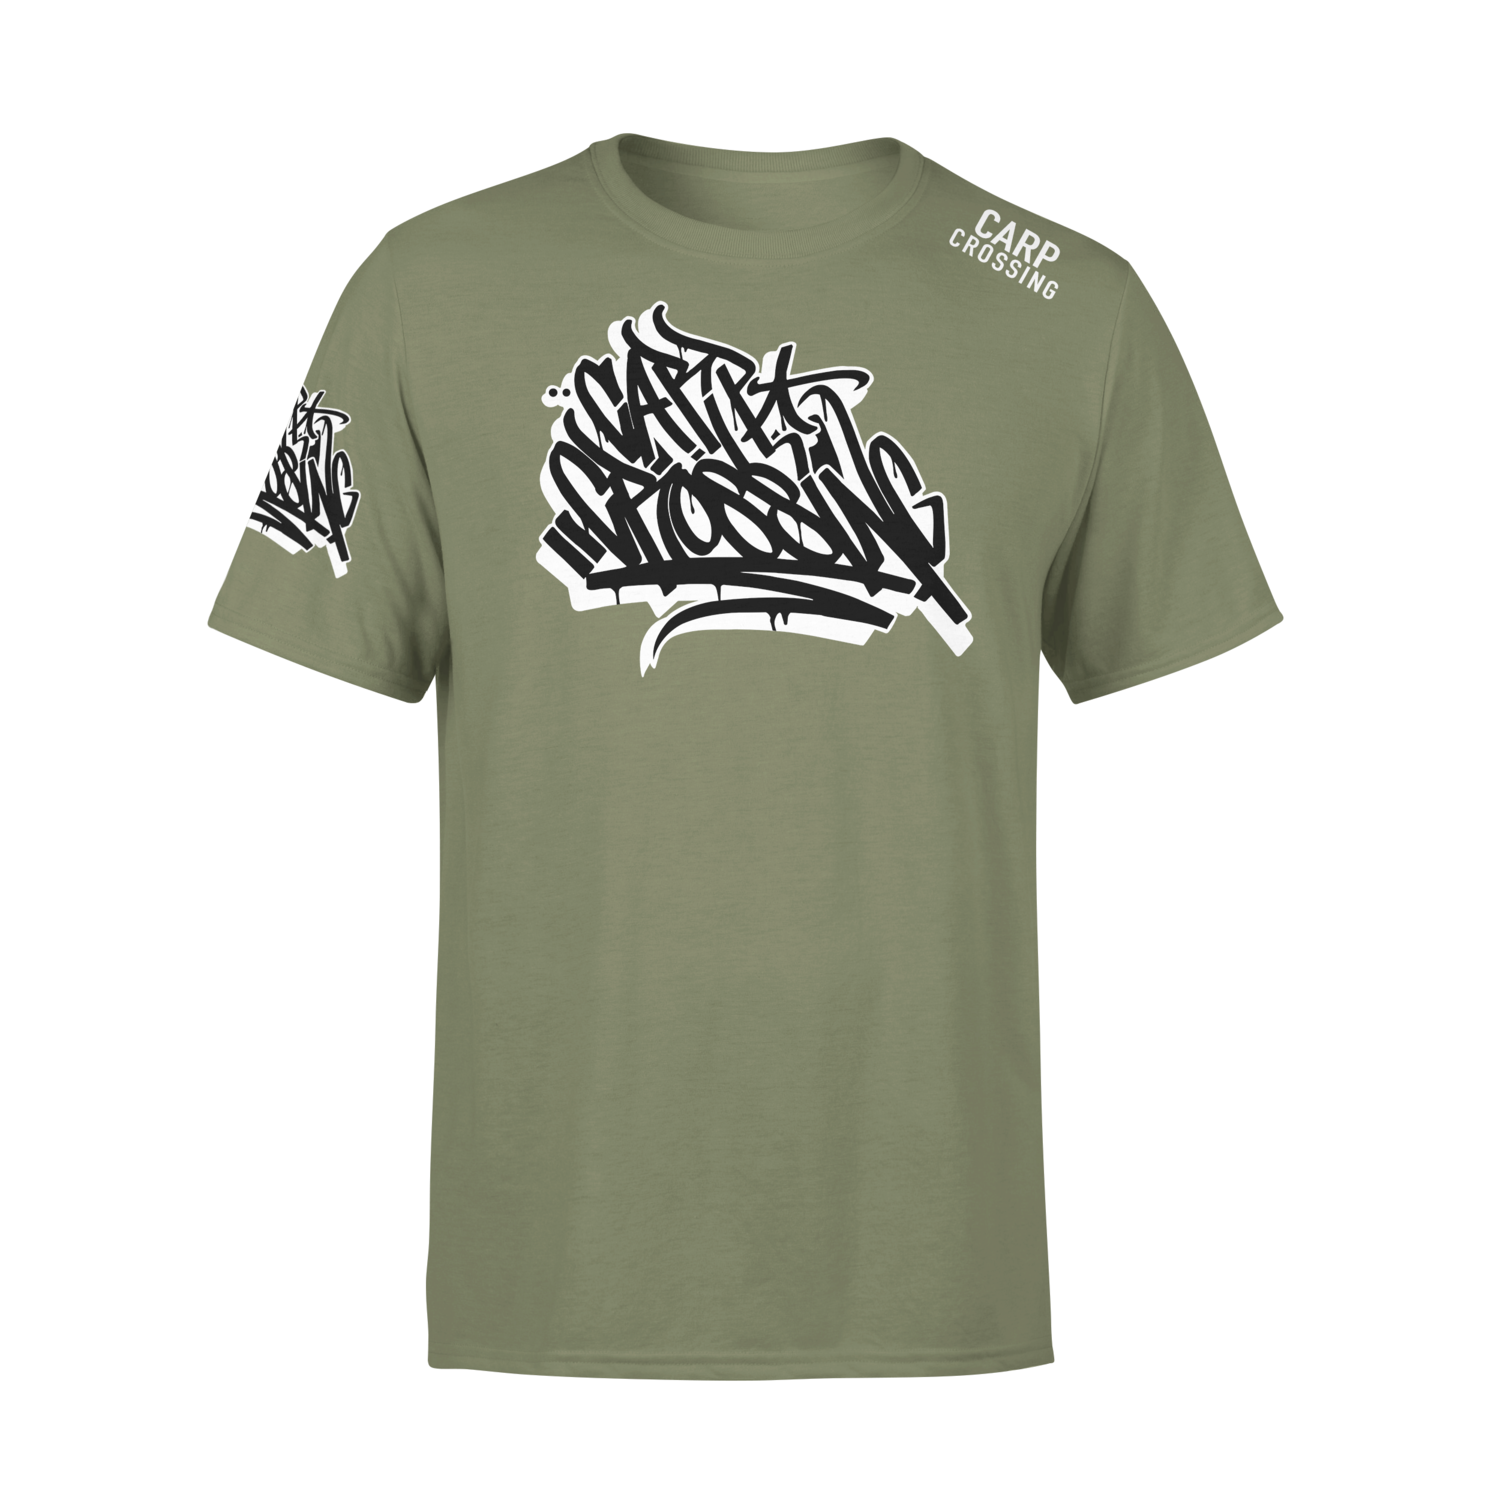 Carpcrossing Urban Carp T-Shirt Green